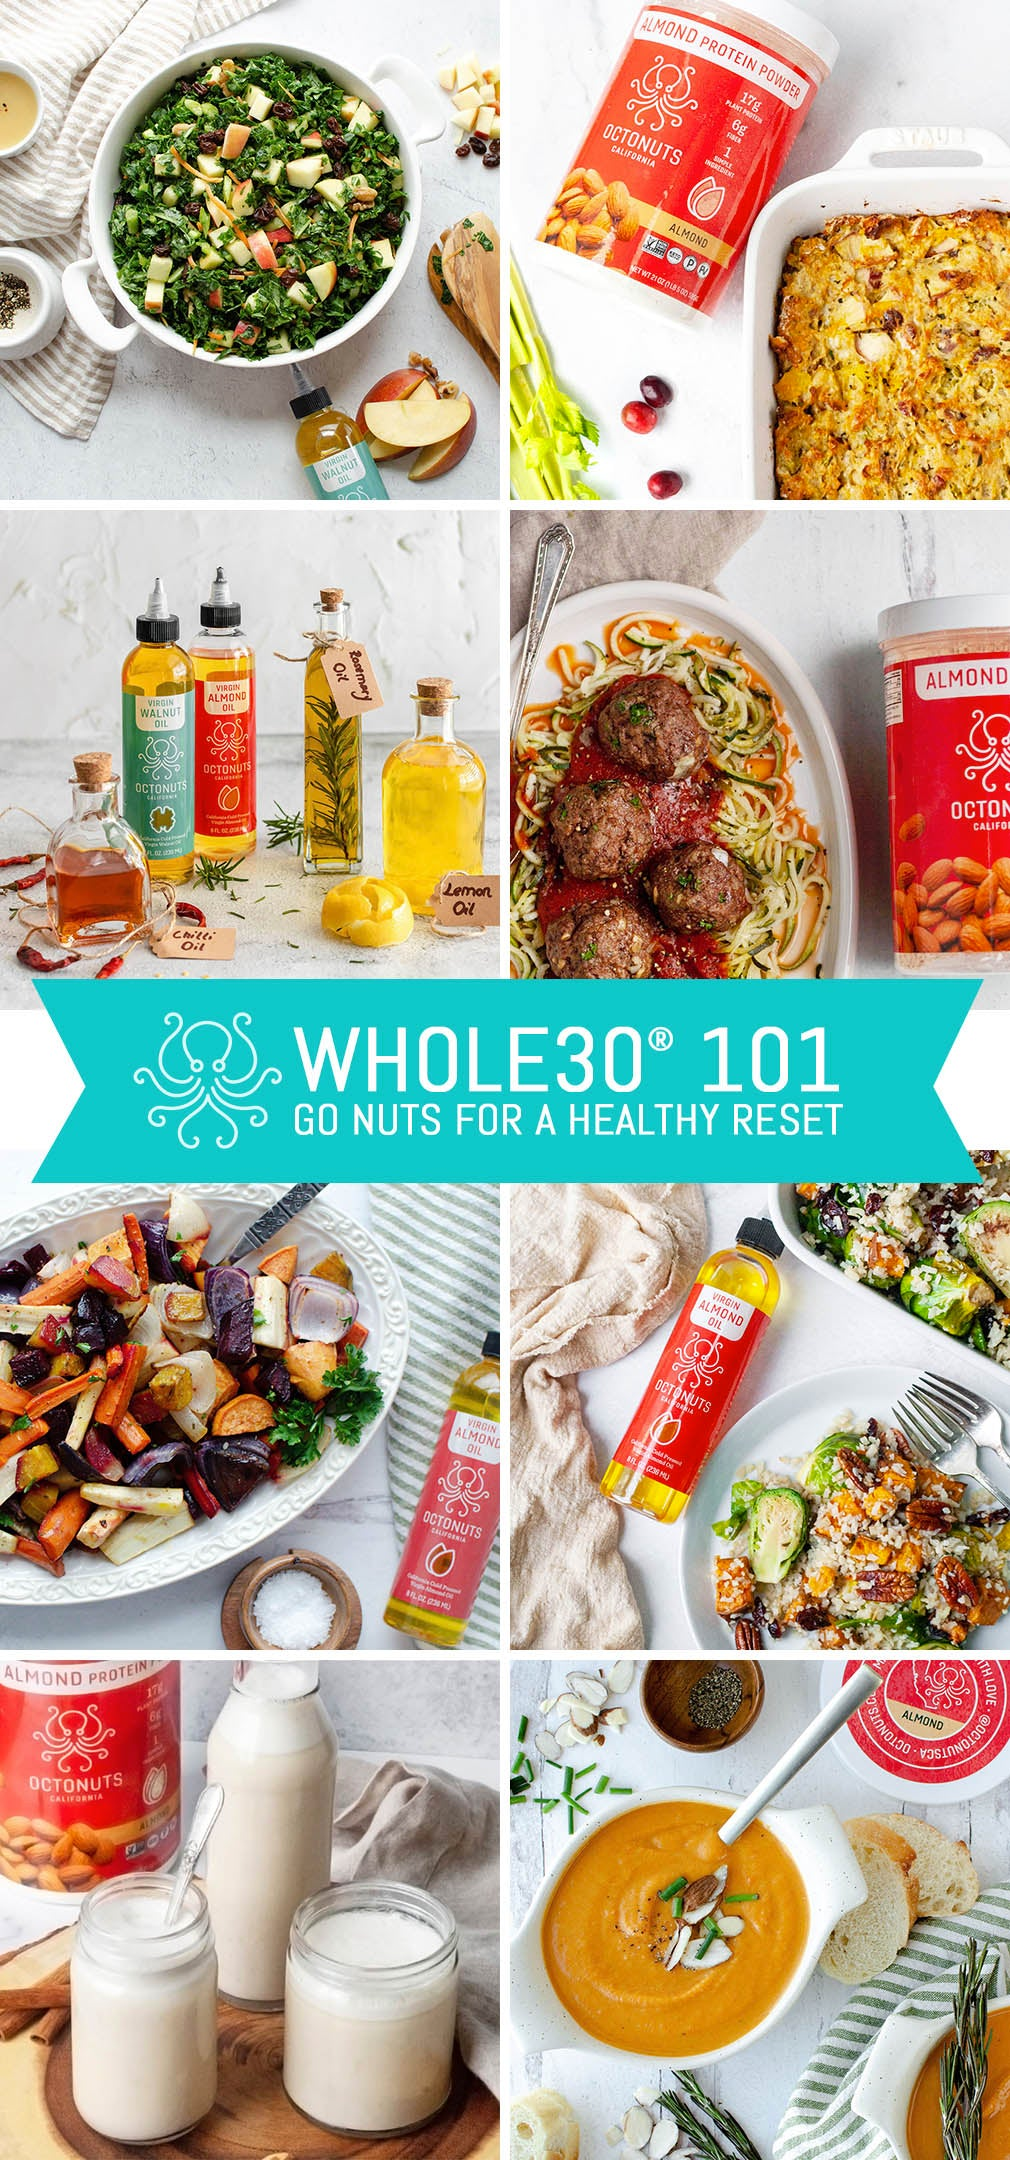 Whole30® 101: Go Nuts for a Healthy Reset